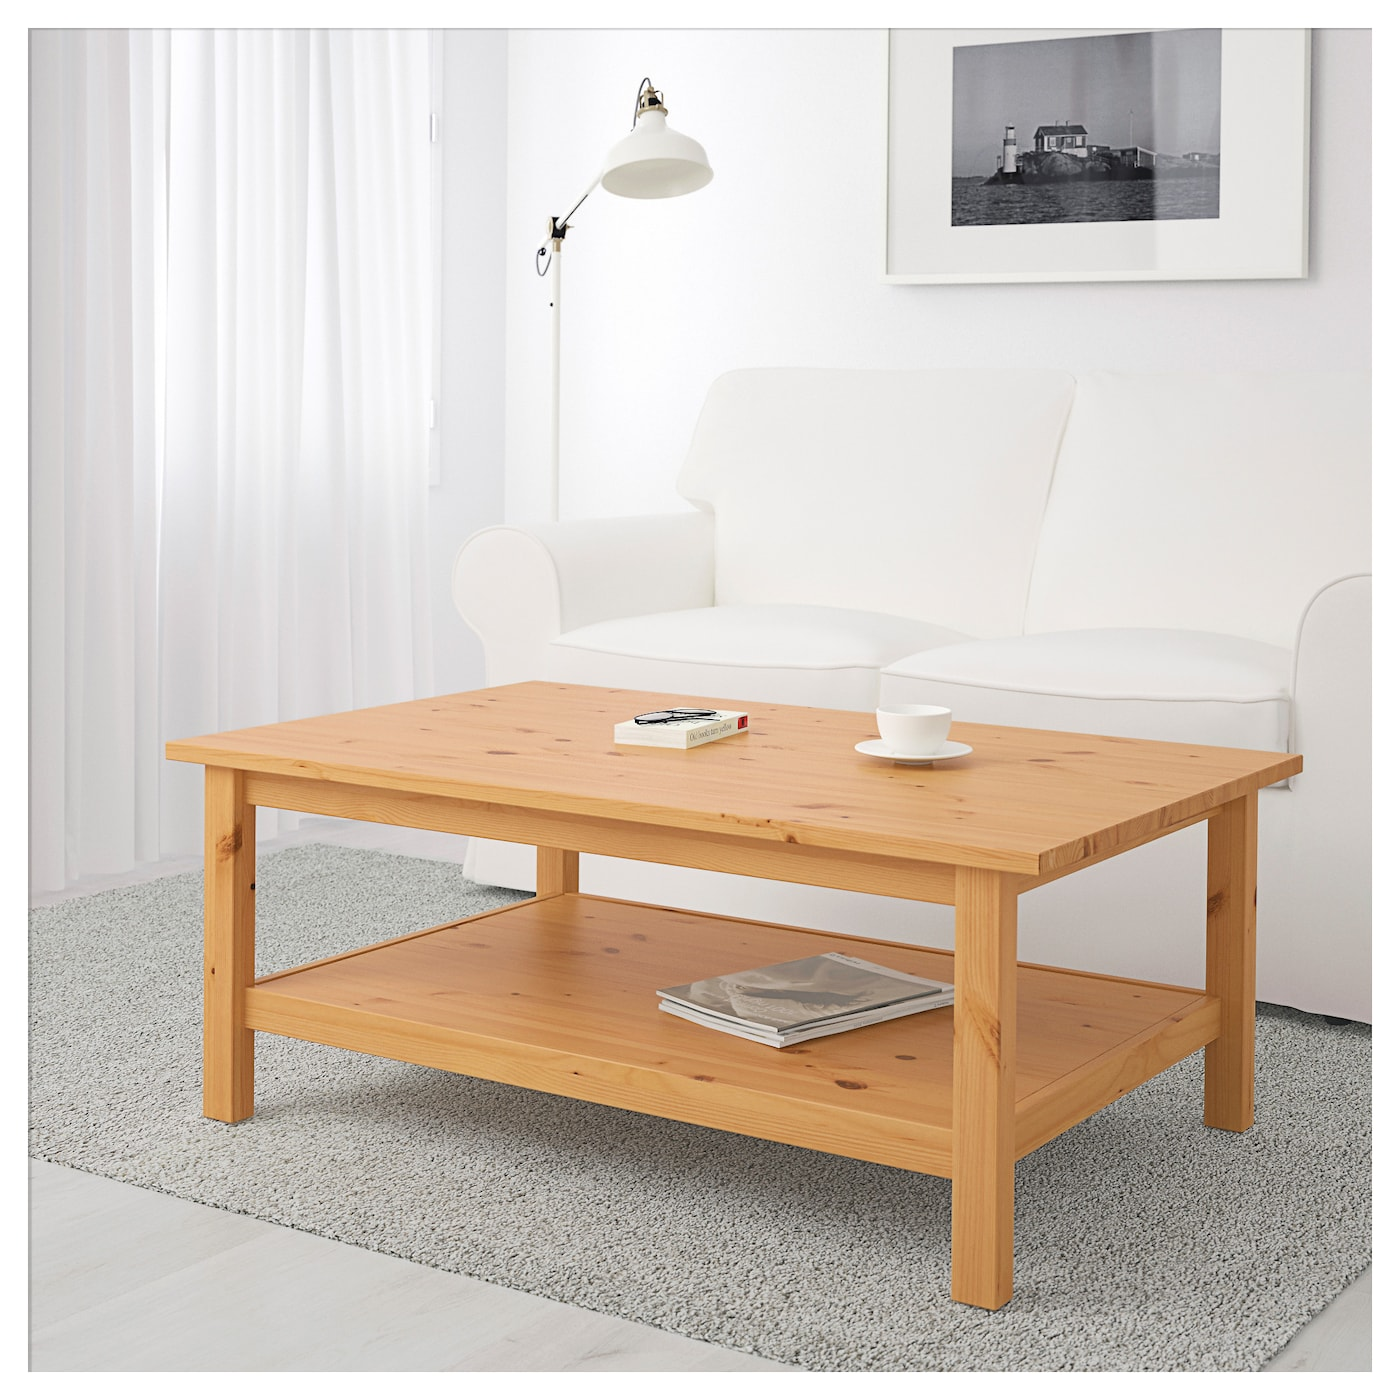 hemnes coffee table light brown 118 x 75 cm ikea. Black Bedroom Furniture Sets. Home Design Ideas